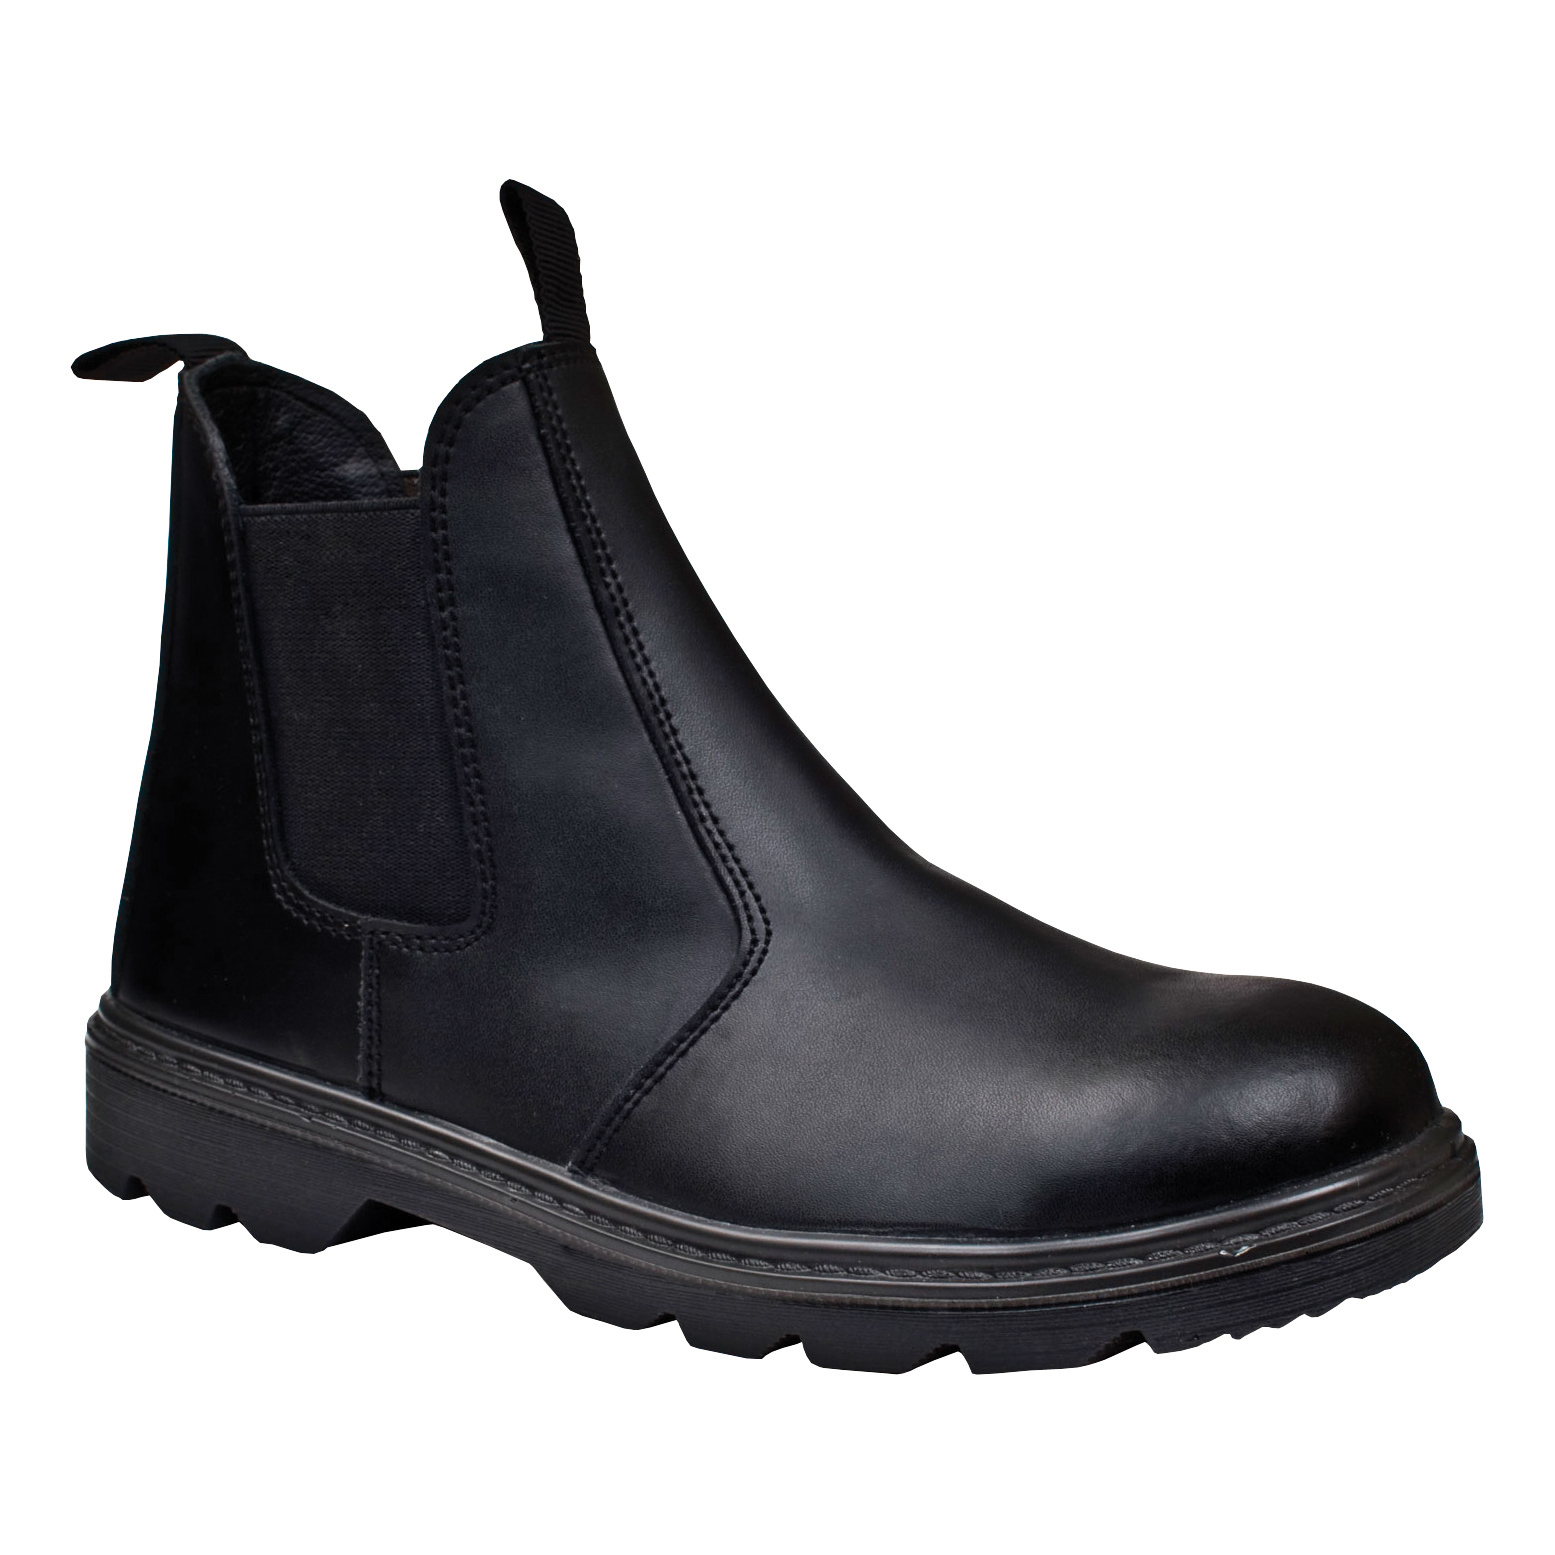 Click Footwear Dealer Boot PU/Leather Steel Toecap Size 7 Black Ref CF16BL07 Approx 3 Day Leadtime